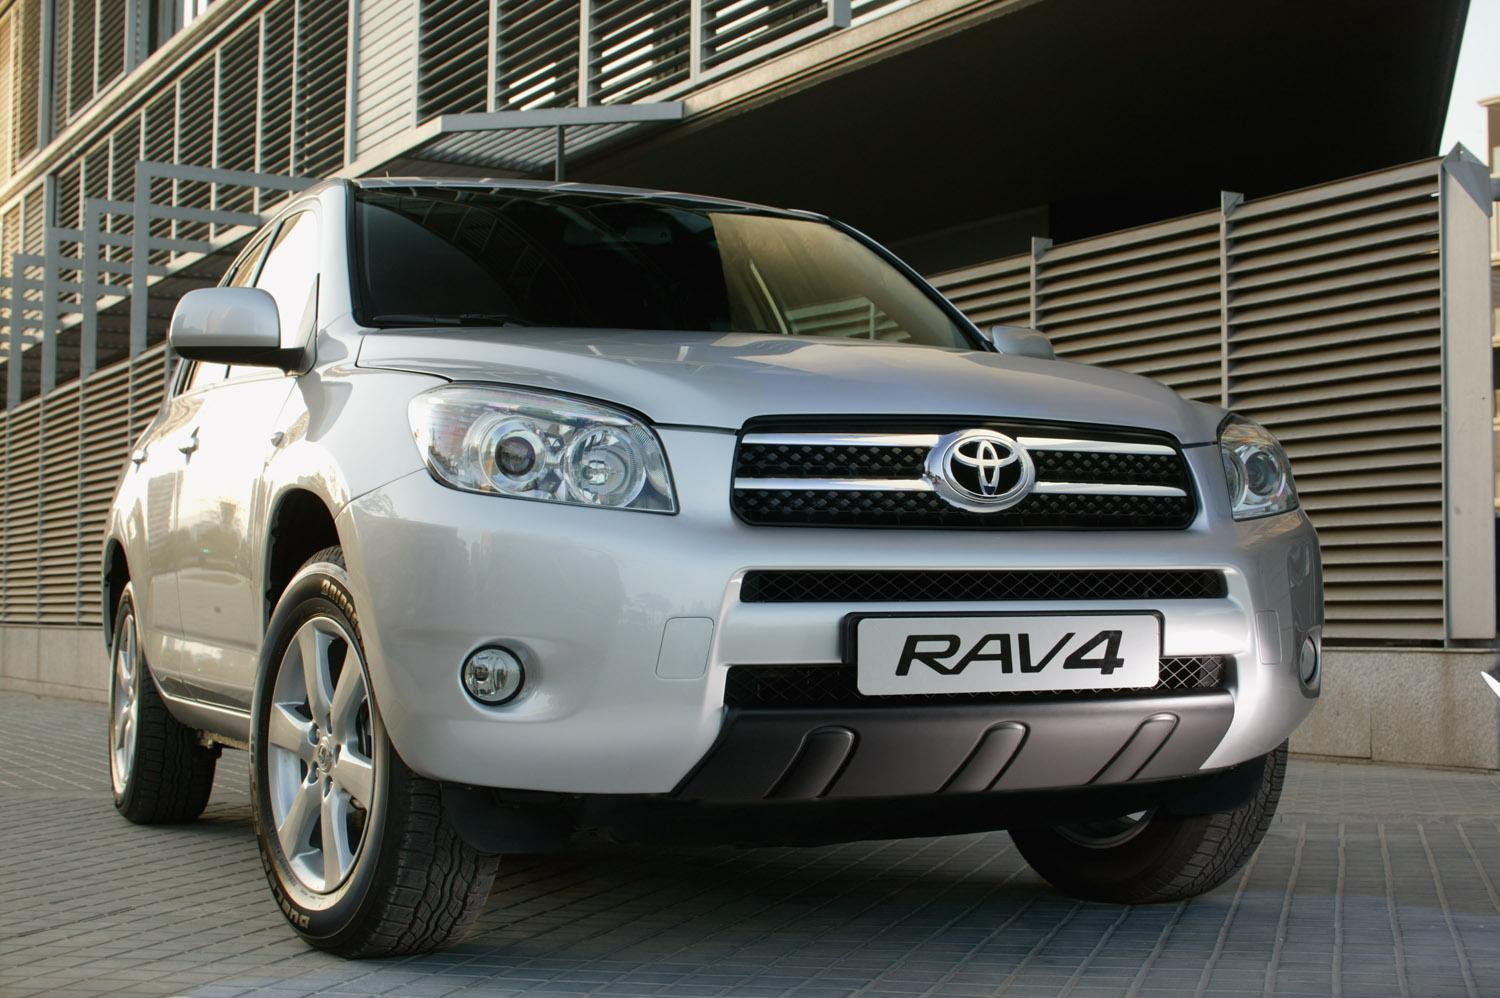 2008 toyota rav4 cross sport review gallery top speed. Black Bedroom Furniture Sets. Home Design Ideas